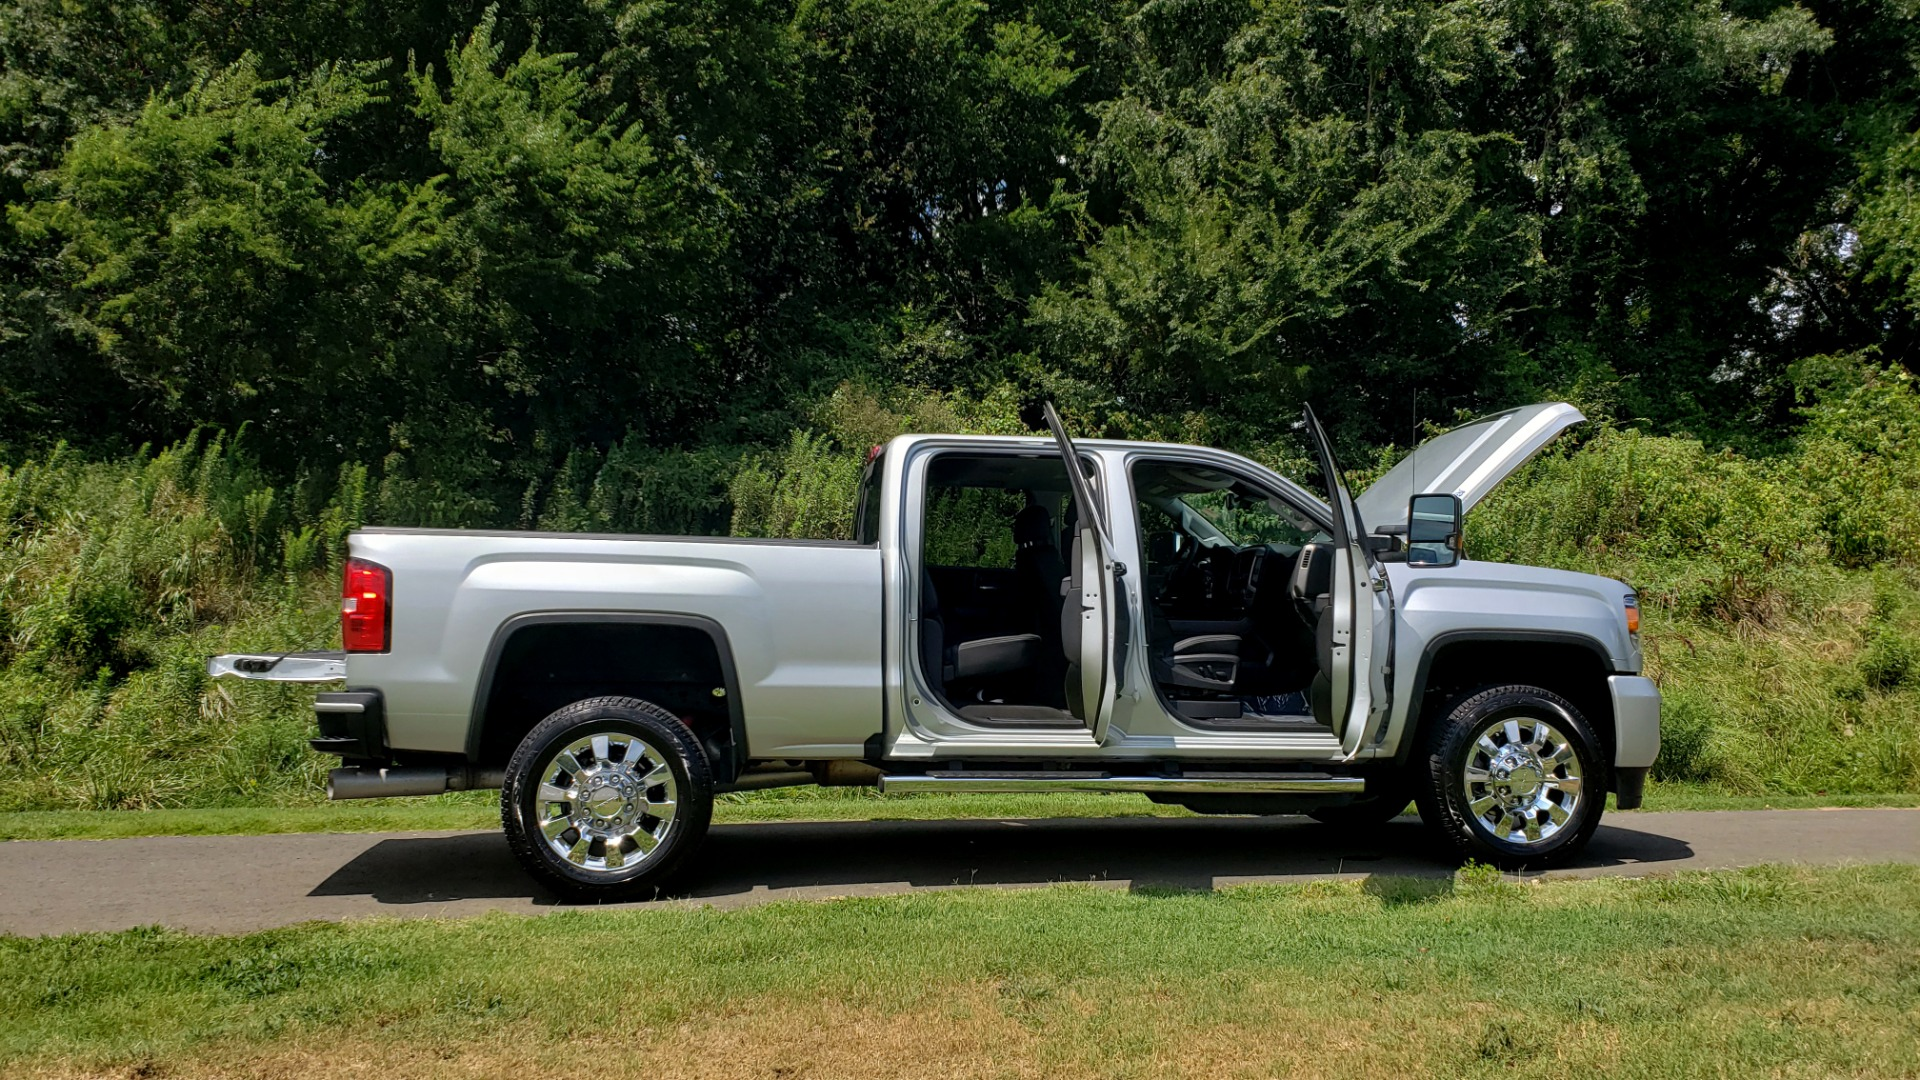 Used 2018 GMC SIERRA 2500HD DENALI 4WD / 6.6L DURAMAX / NAV / SUNROOF / BOSE / REARVIEW for sale Sold at Formula Imports in Charlotte NC 28227 29